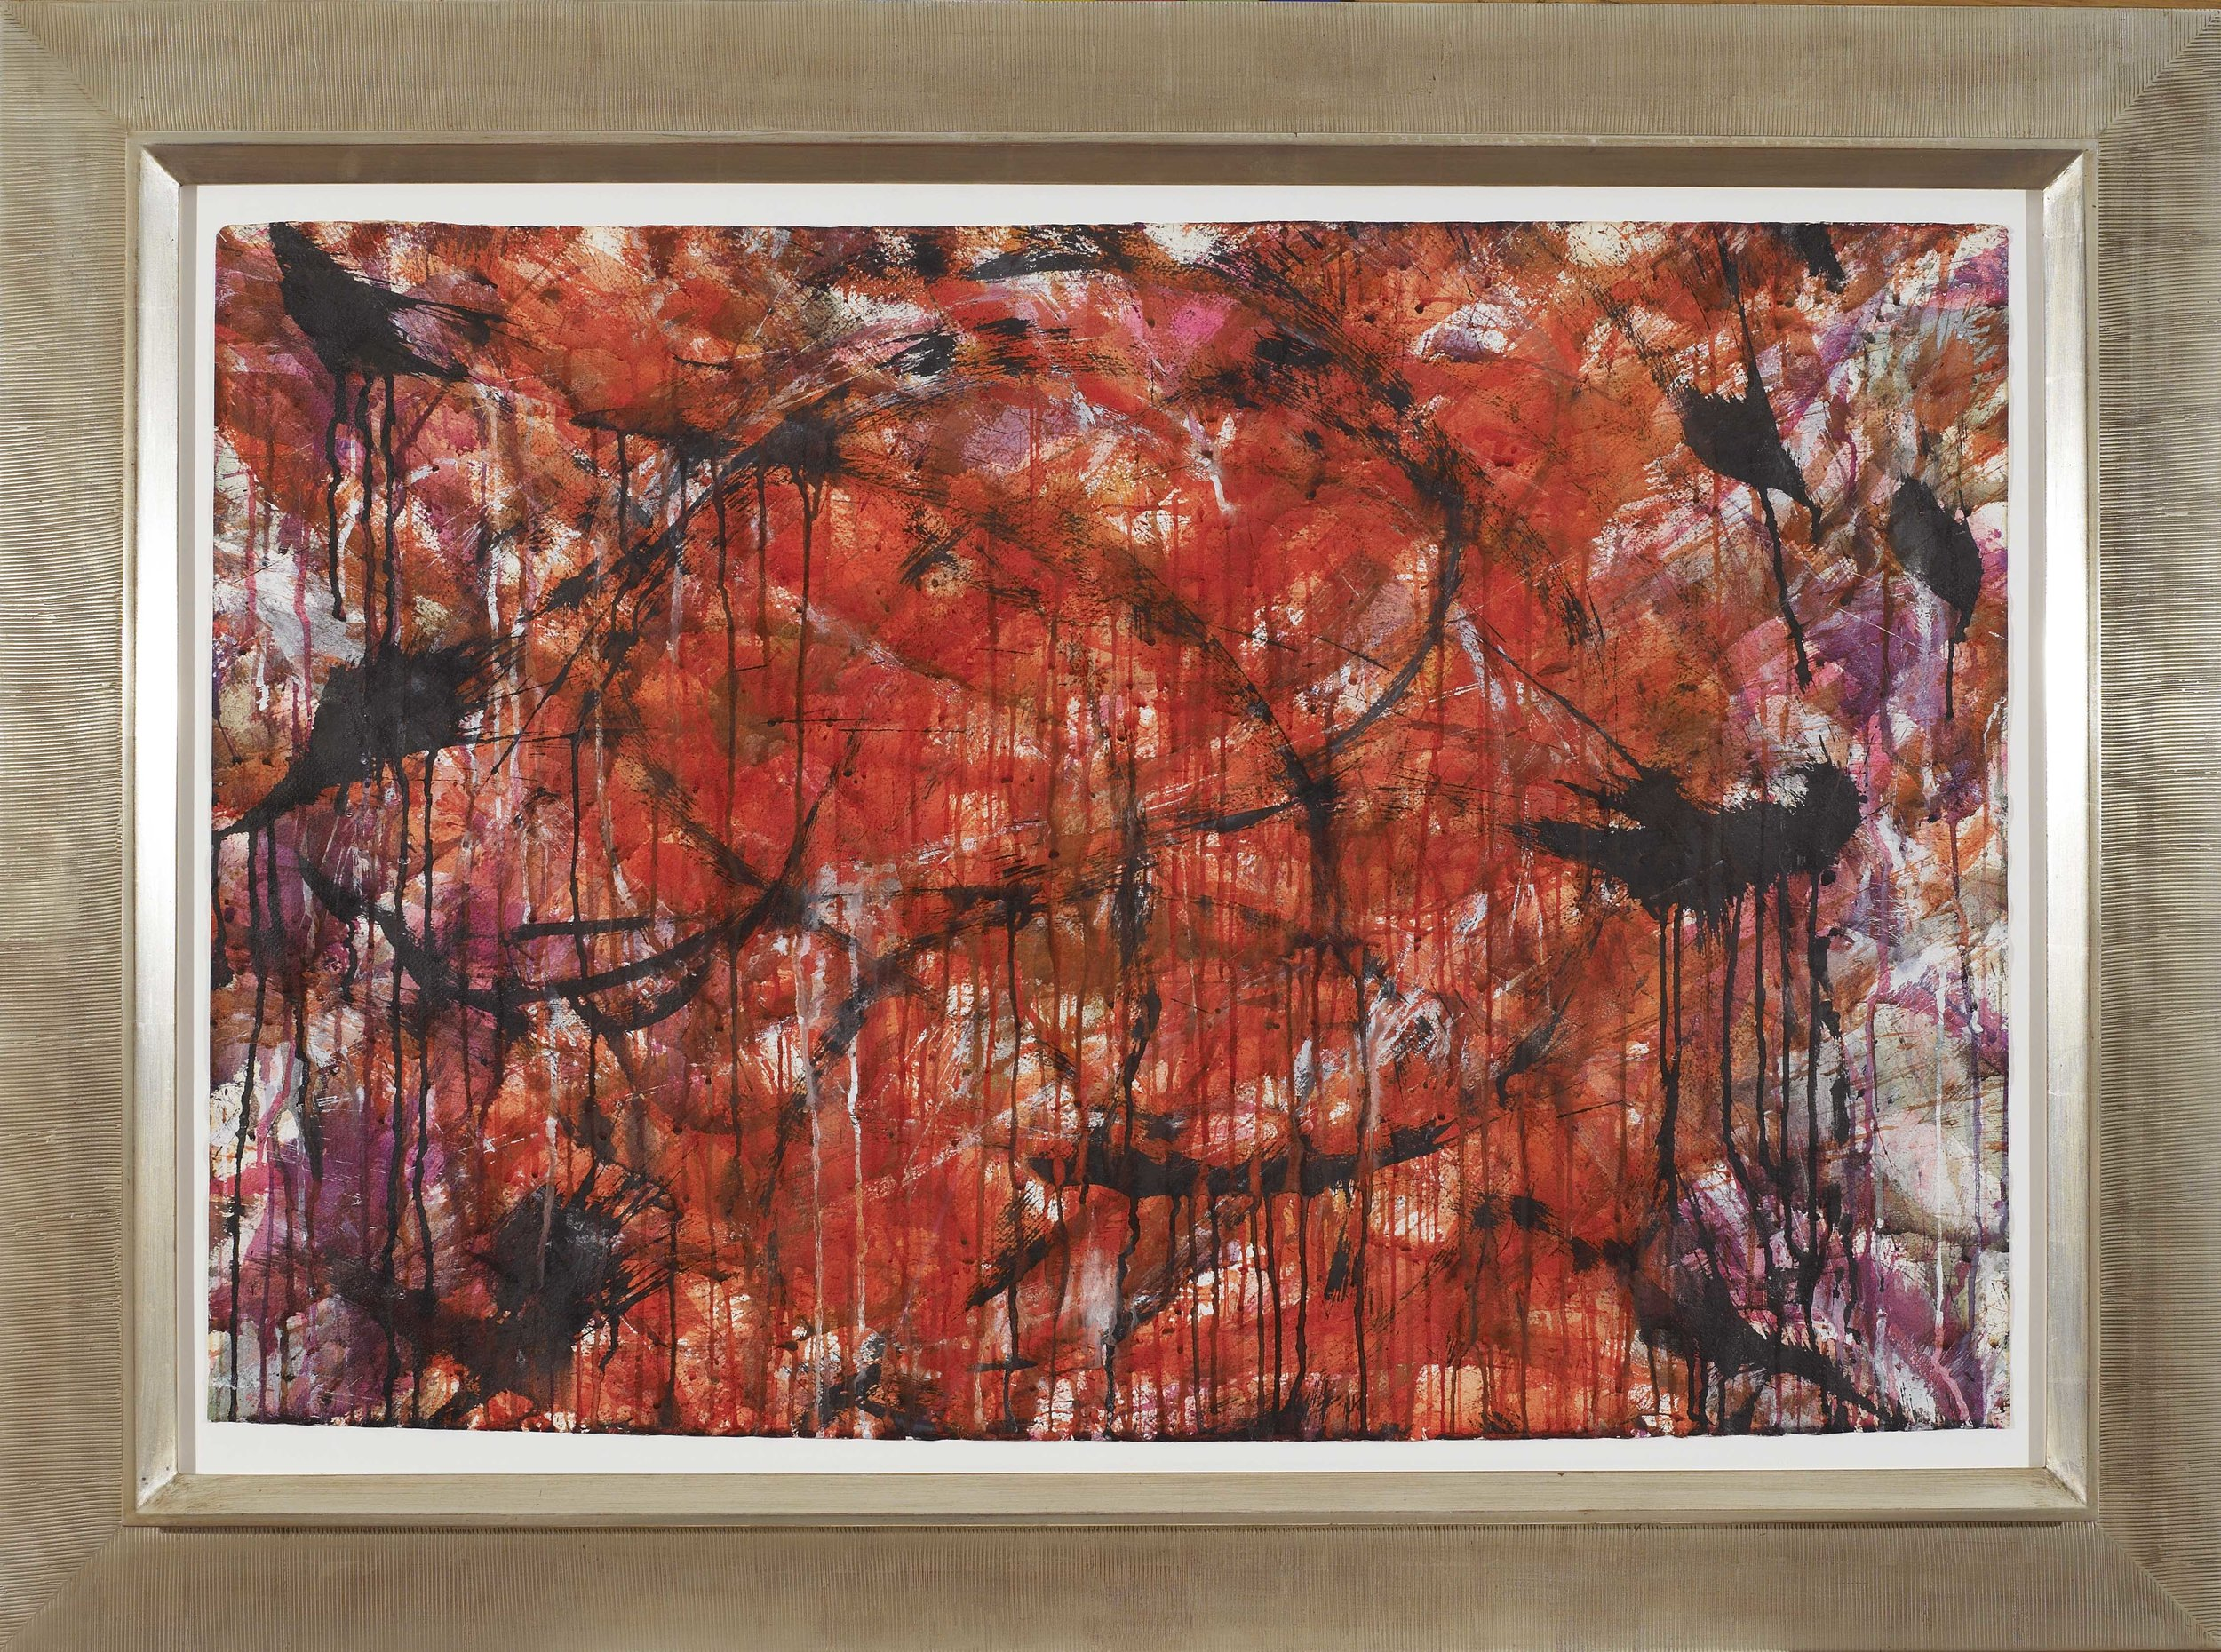 Untitled, 1957,   Watercolor on paper, 1957 29 3/4 x 36 3/4 inches